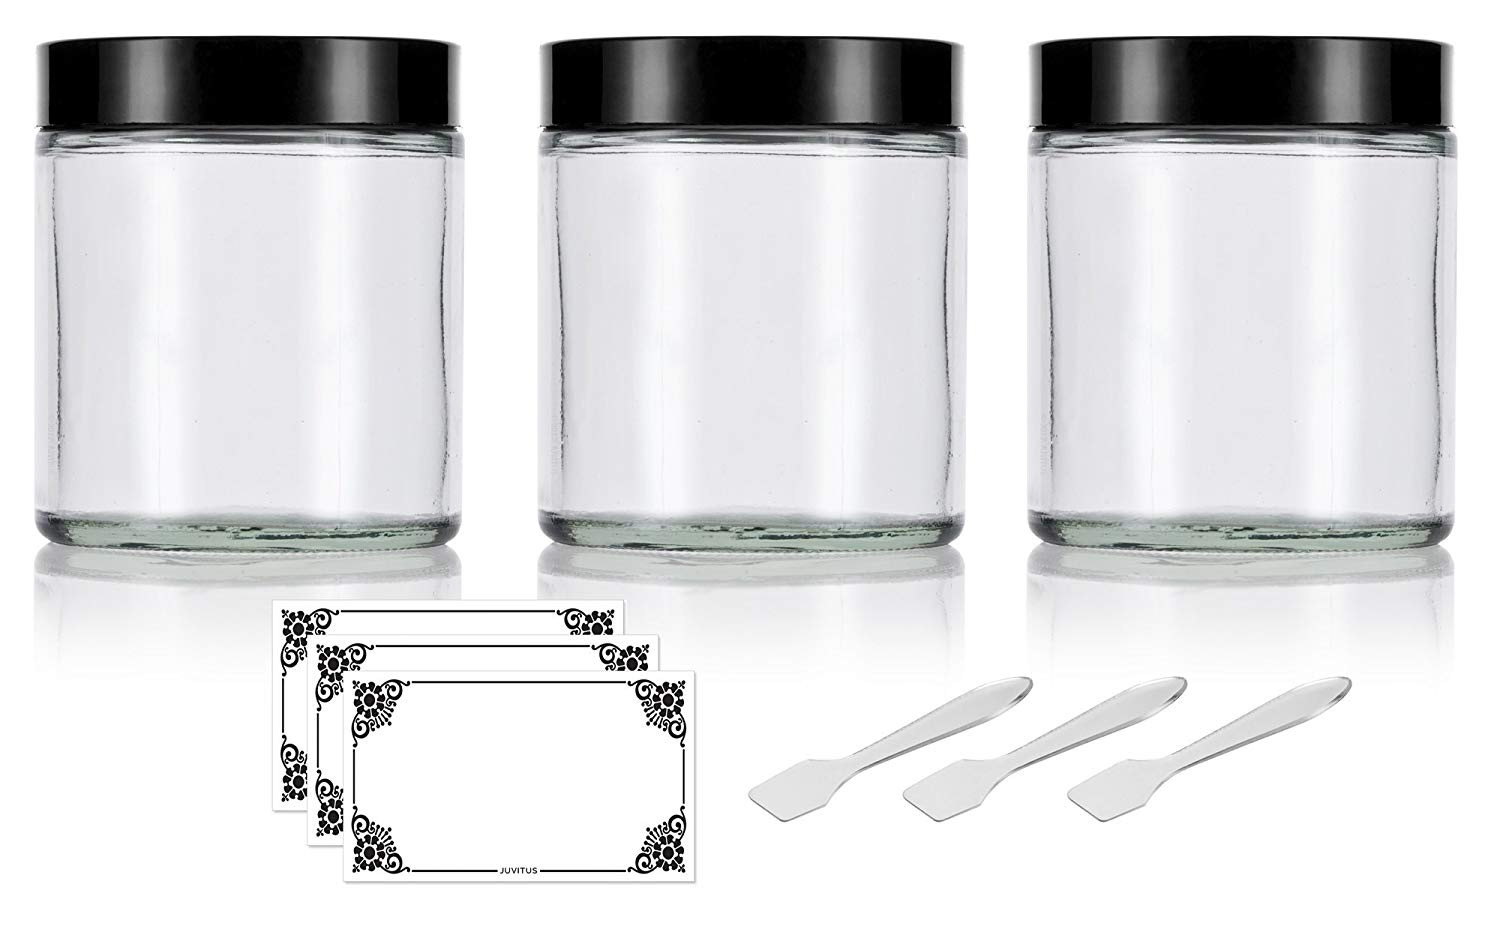 thick heavy glass vases of amazon com clear thick glass straight sided jar 4 oz 120 ml 3 with amazon com clear thick glass straight sided jar 4 oz 120 ml 3 pack spatulas and labels industrial scientific